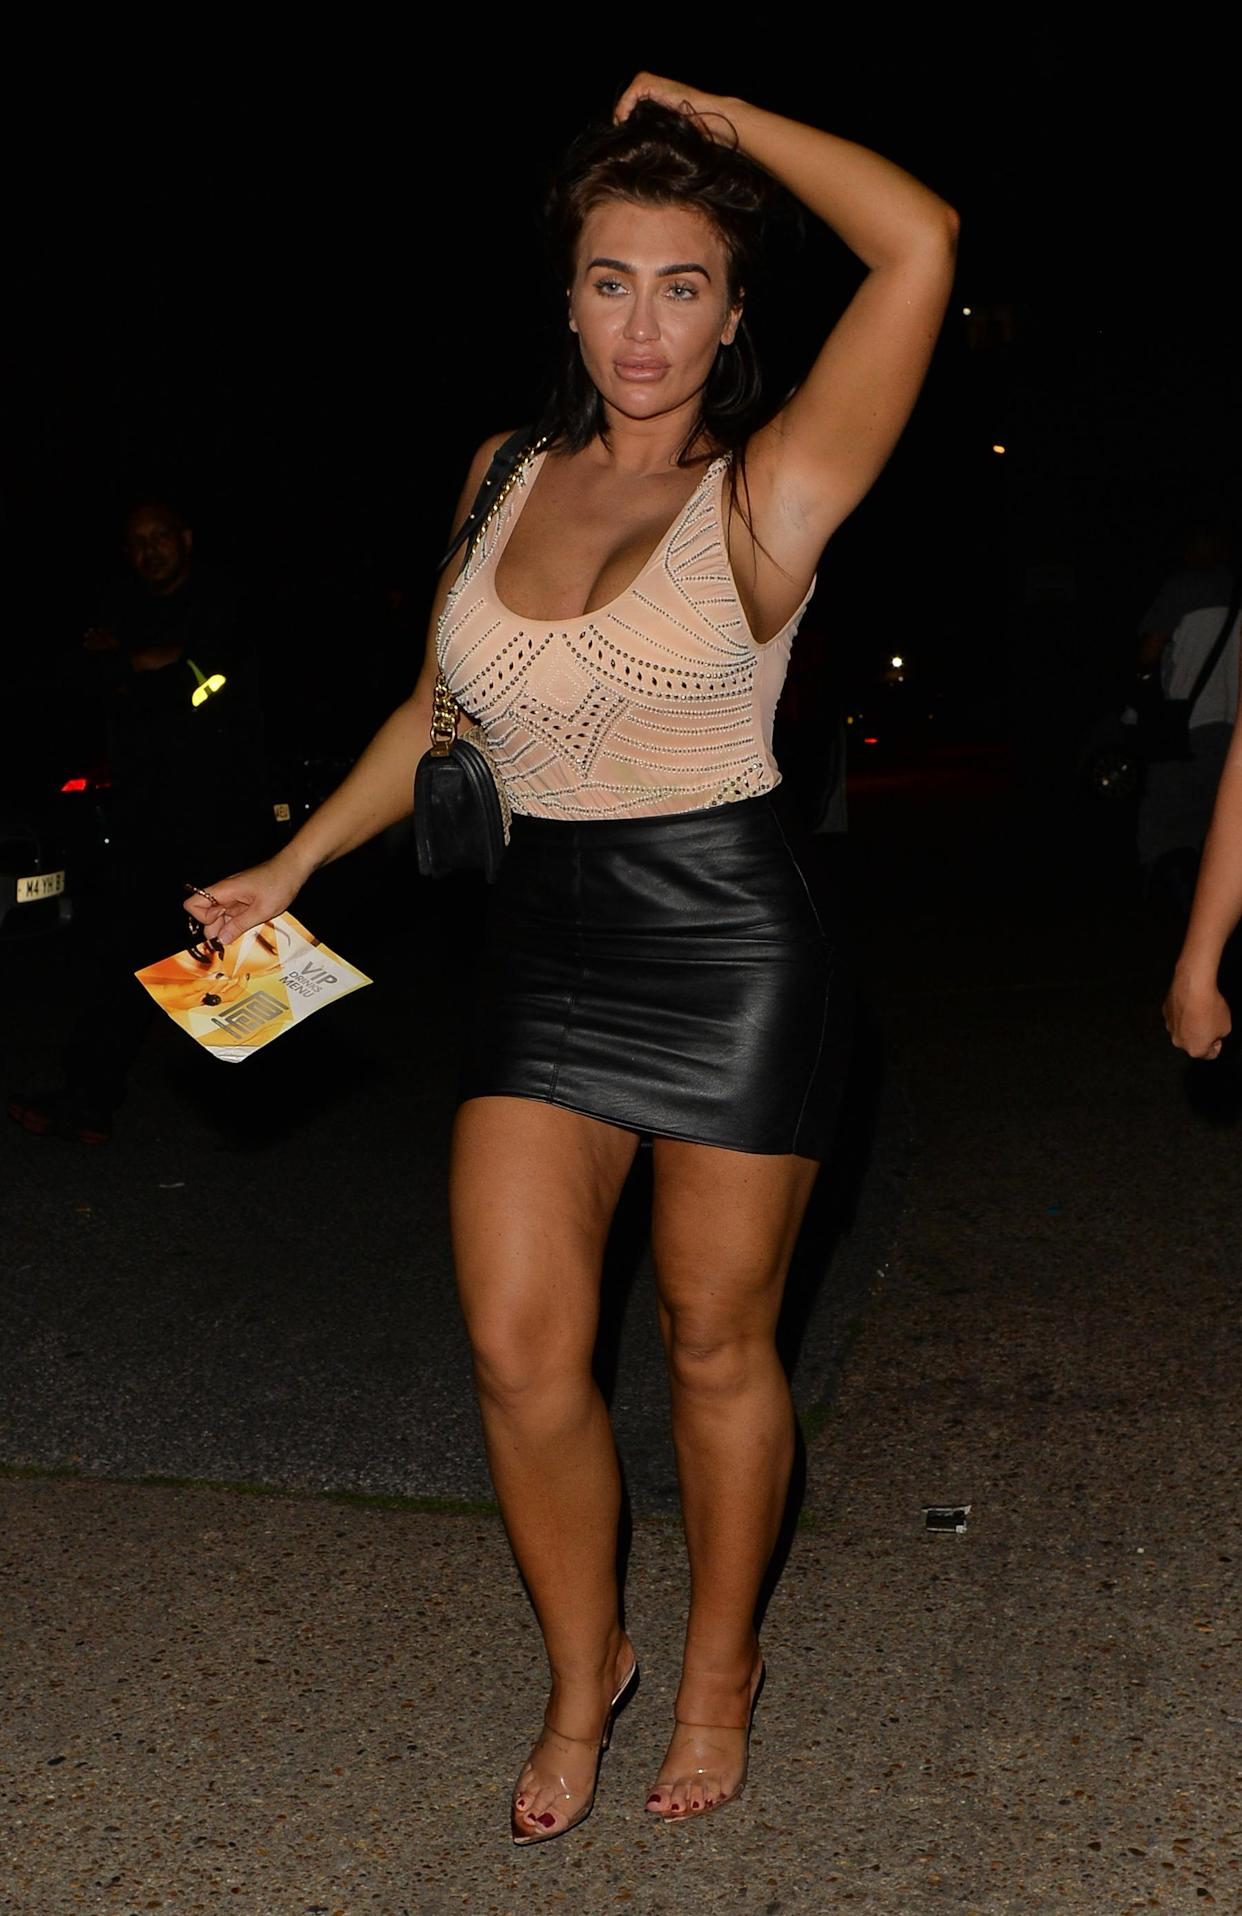 Lauren Goodger photographiée en août 2019 / (Photo: Getty)